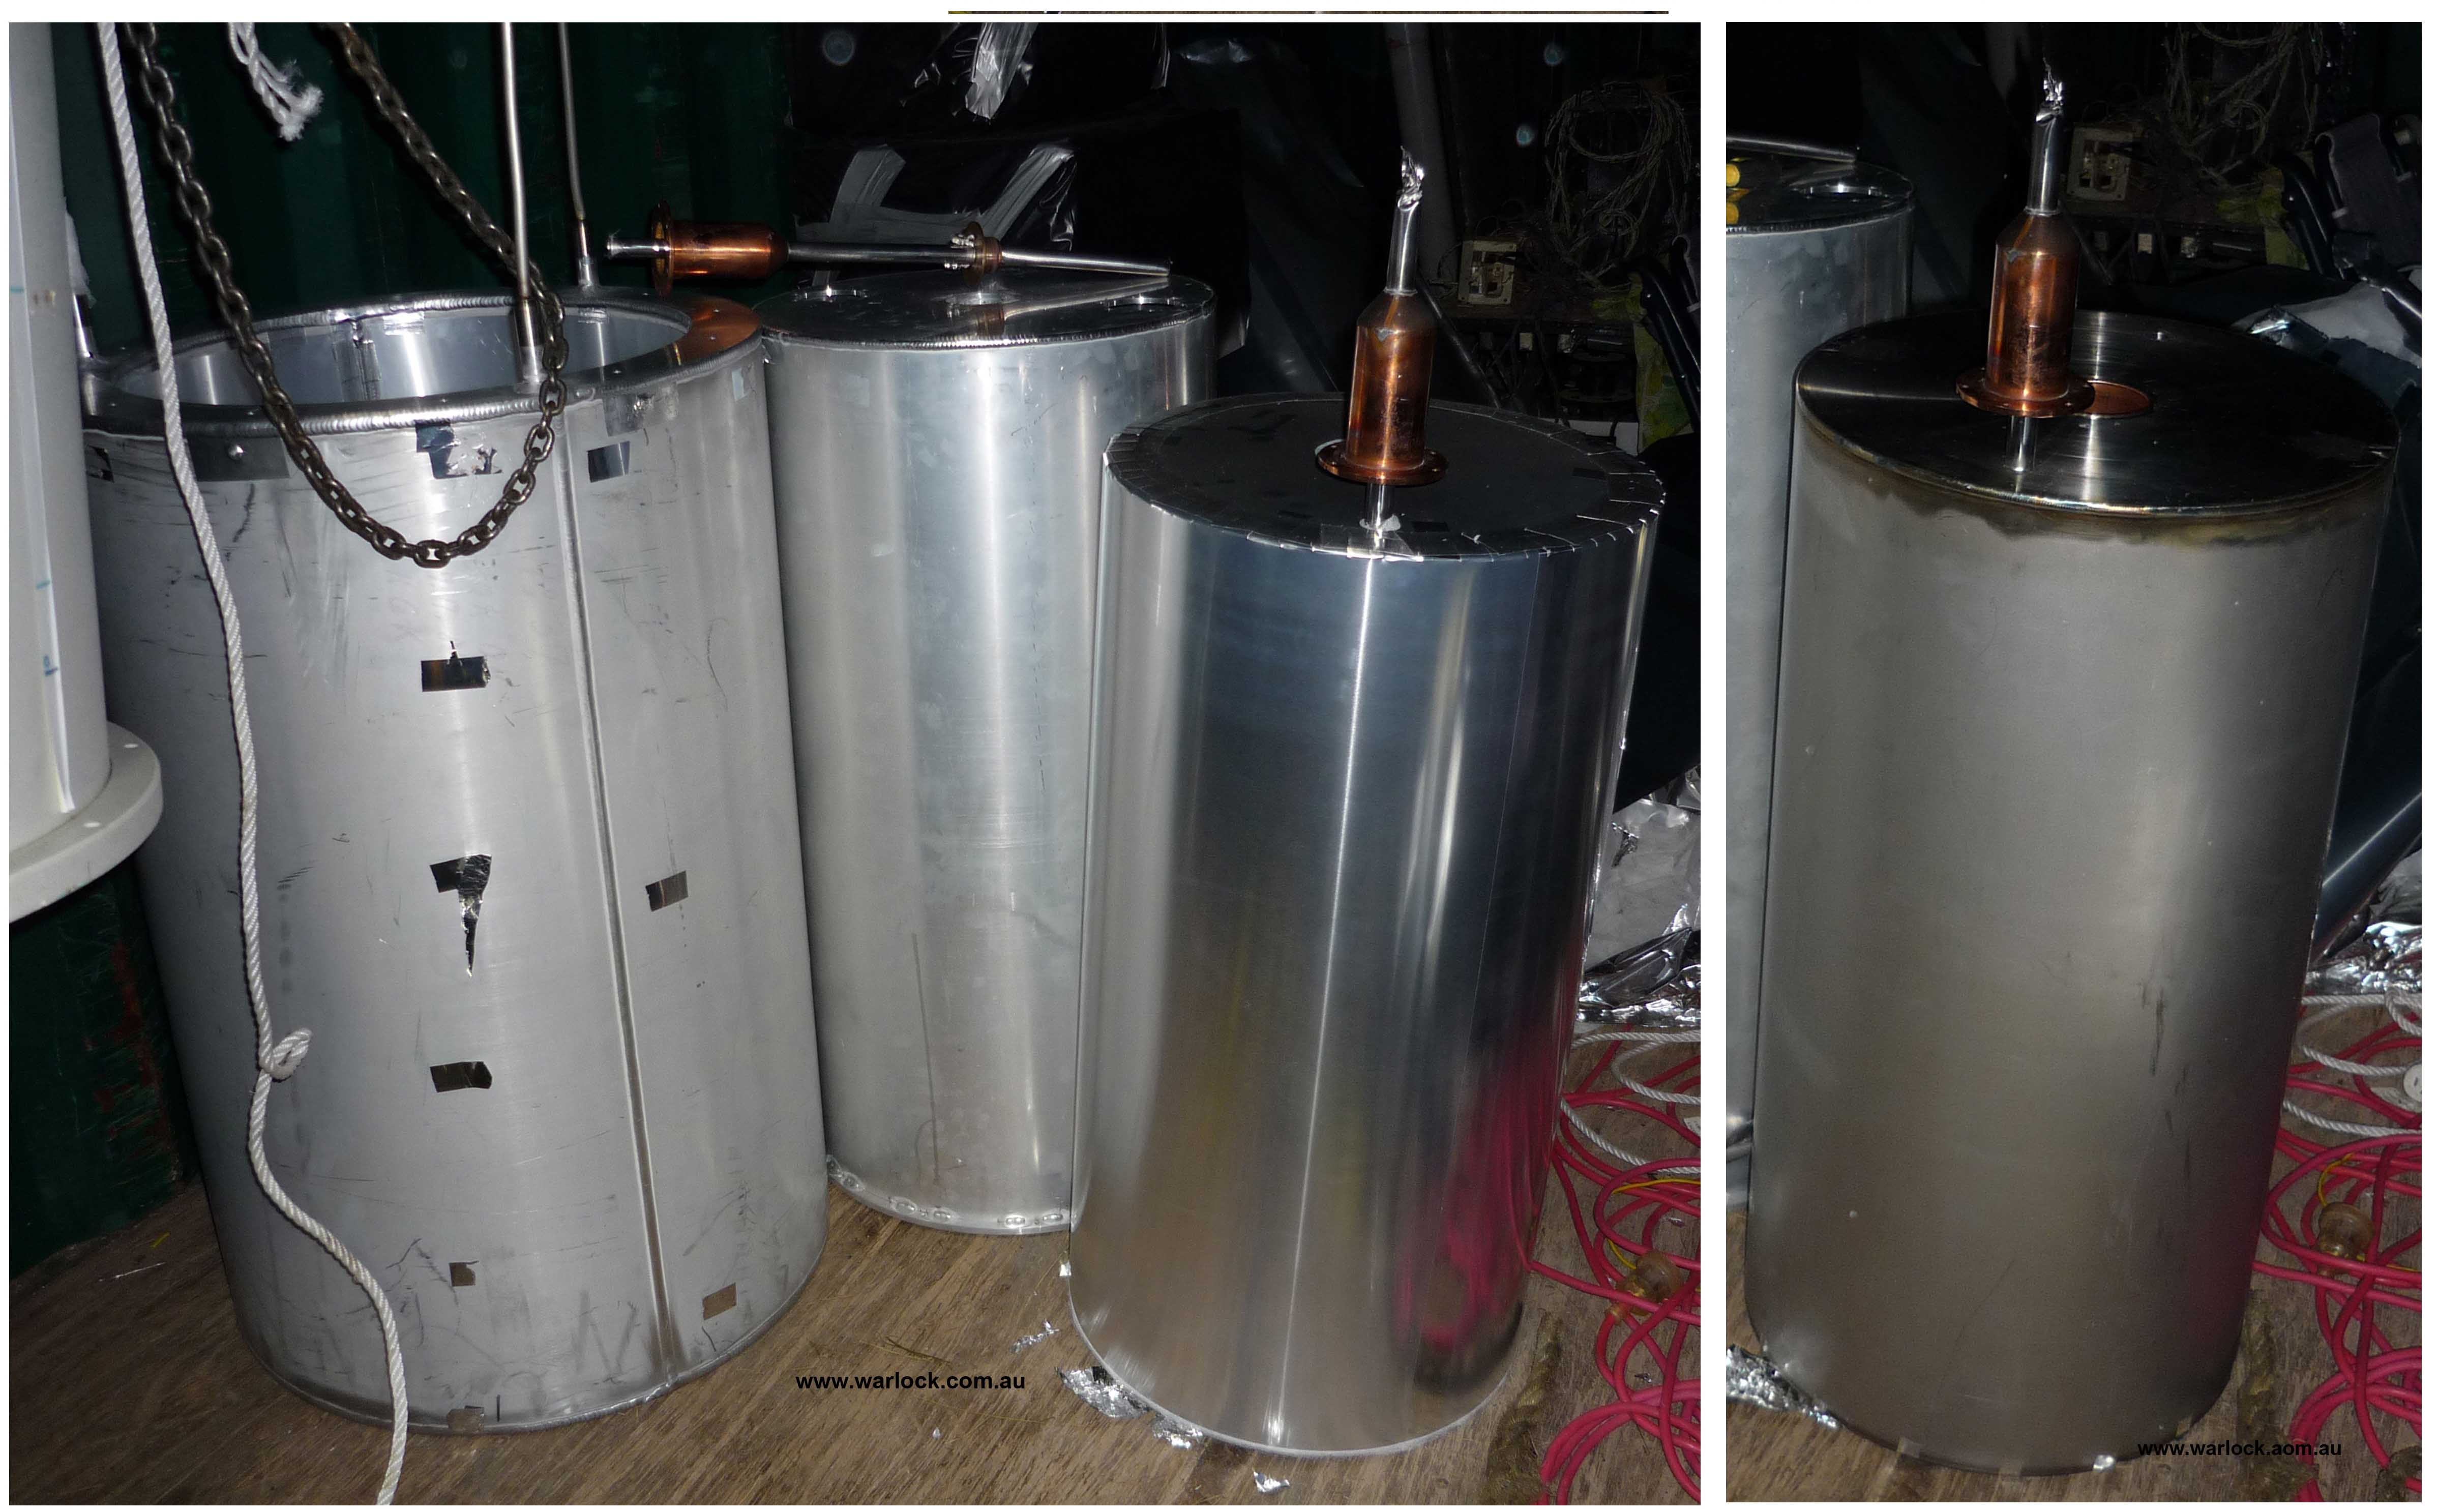 The 3 cylinders separated easily. The outside one is the 'Liquid Nitrogen Vessel' that attaches to the outermost fill tubes. The centre one is a '4 K Radiation Shield' that blocks infra-red radiation from reaching the 'Liquid Helium Vessel' on the inside.